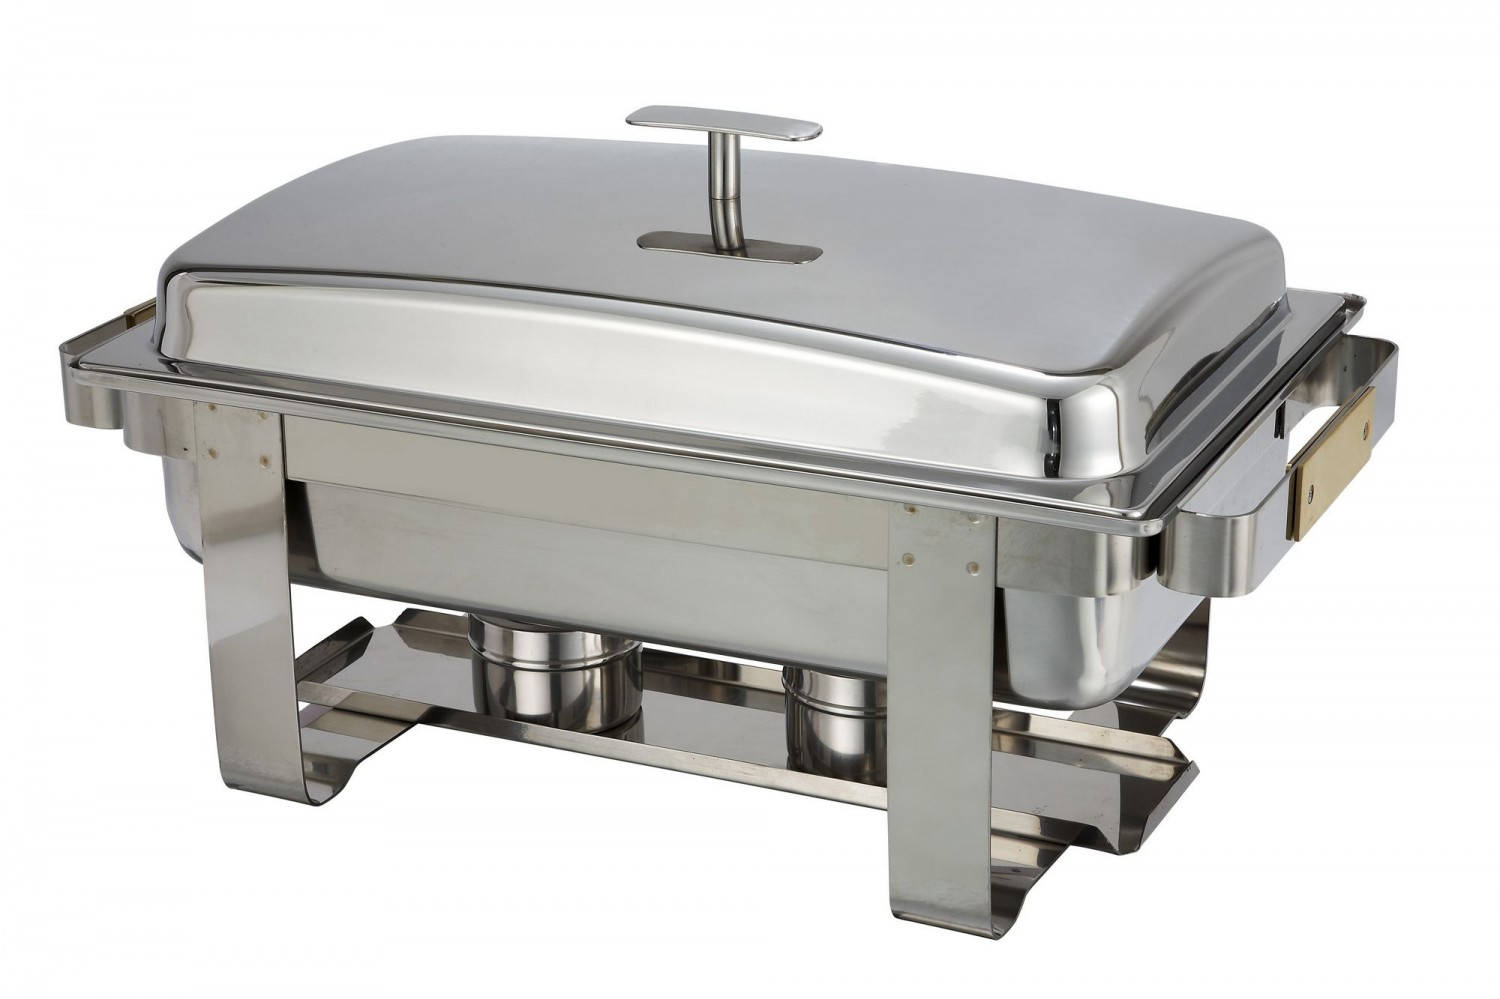 Winco C-5080 Dallas Full Size Stainless Steel Roll-Top Chafer with Gold Accents 8 Qt.